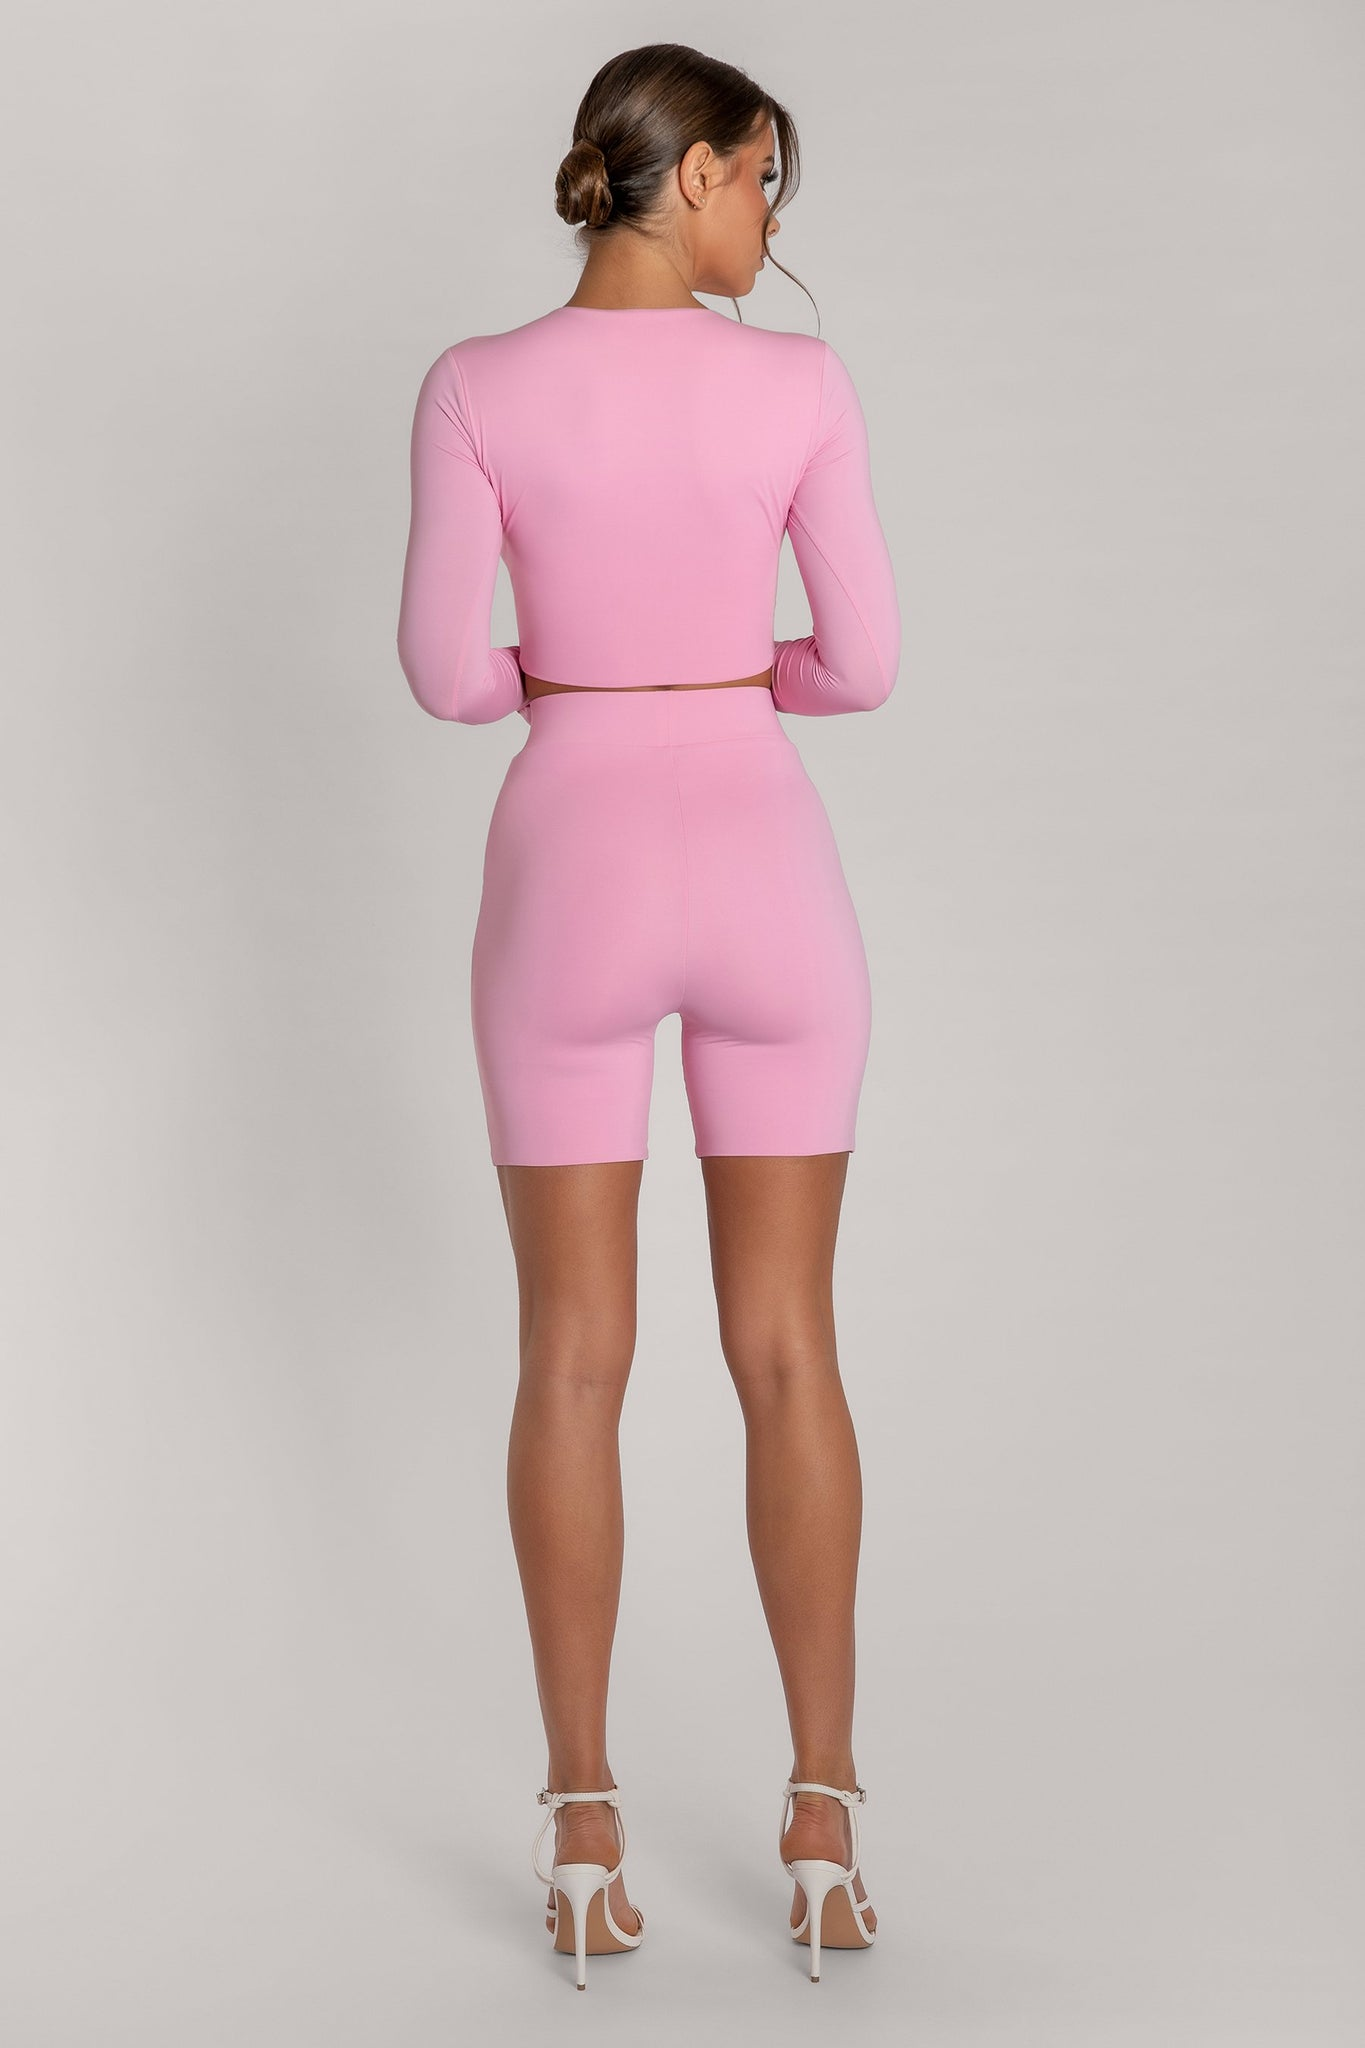 Cameryn High Waisted Bike Short - Pink - MESHKI